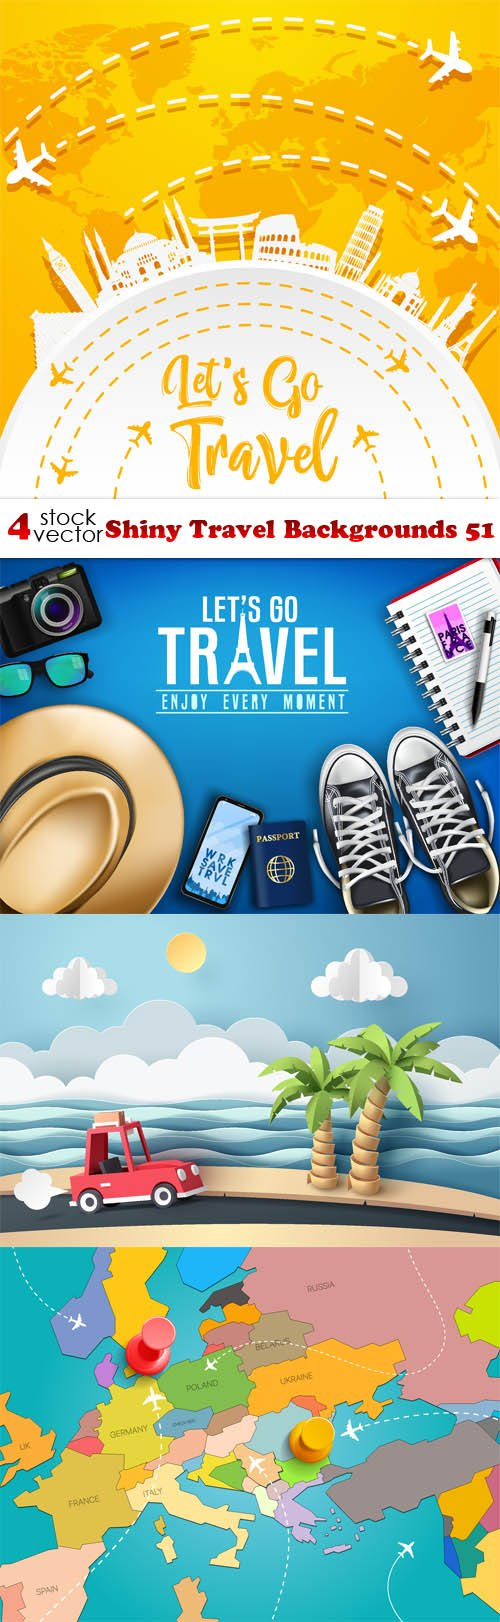 Vectors - Shiny Travel Backgrounds 51